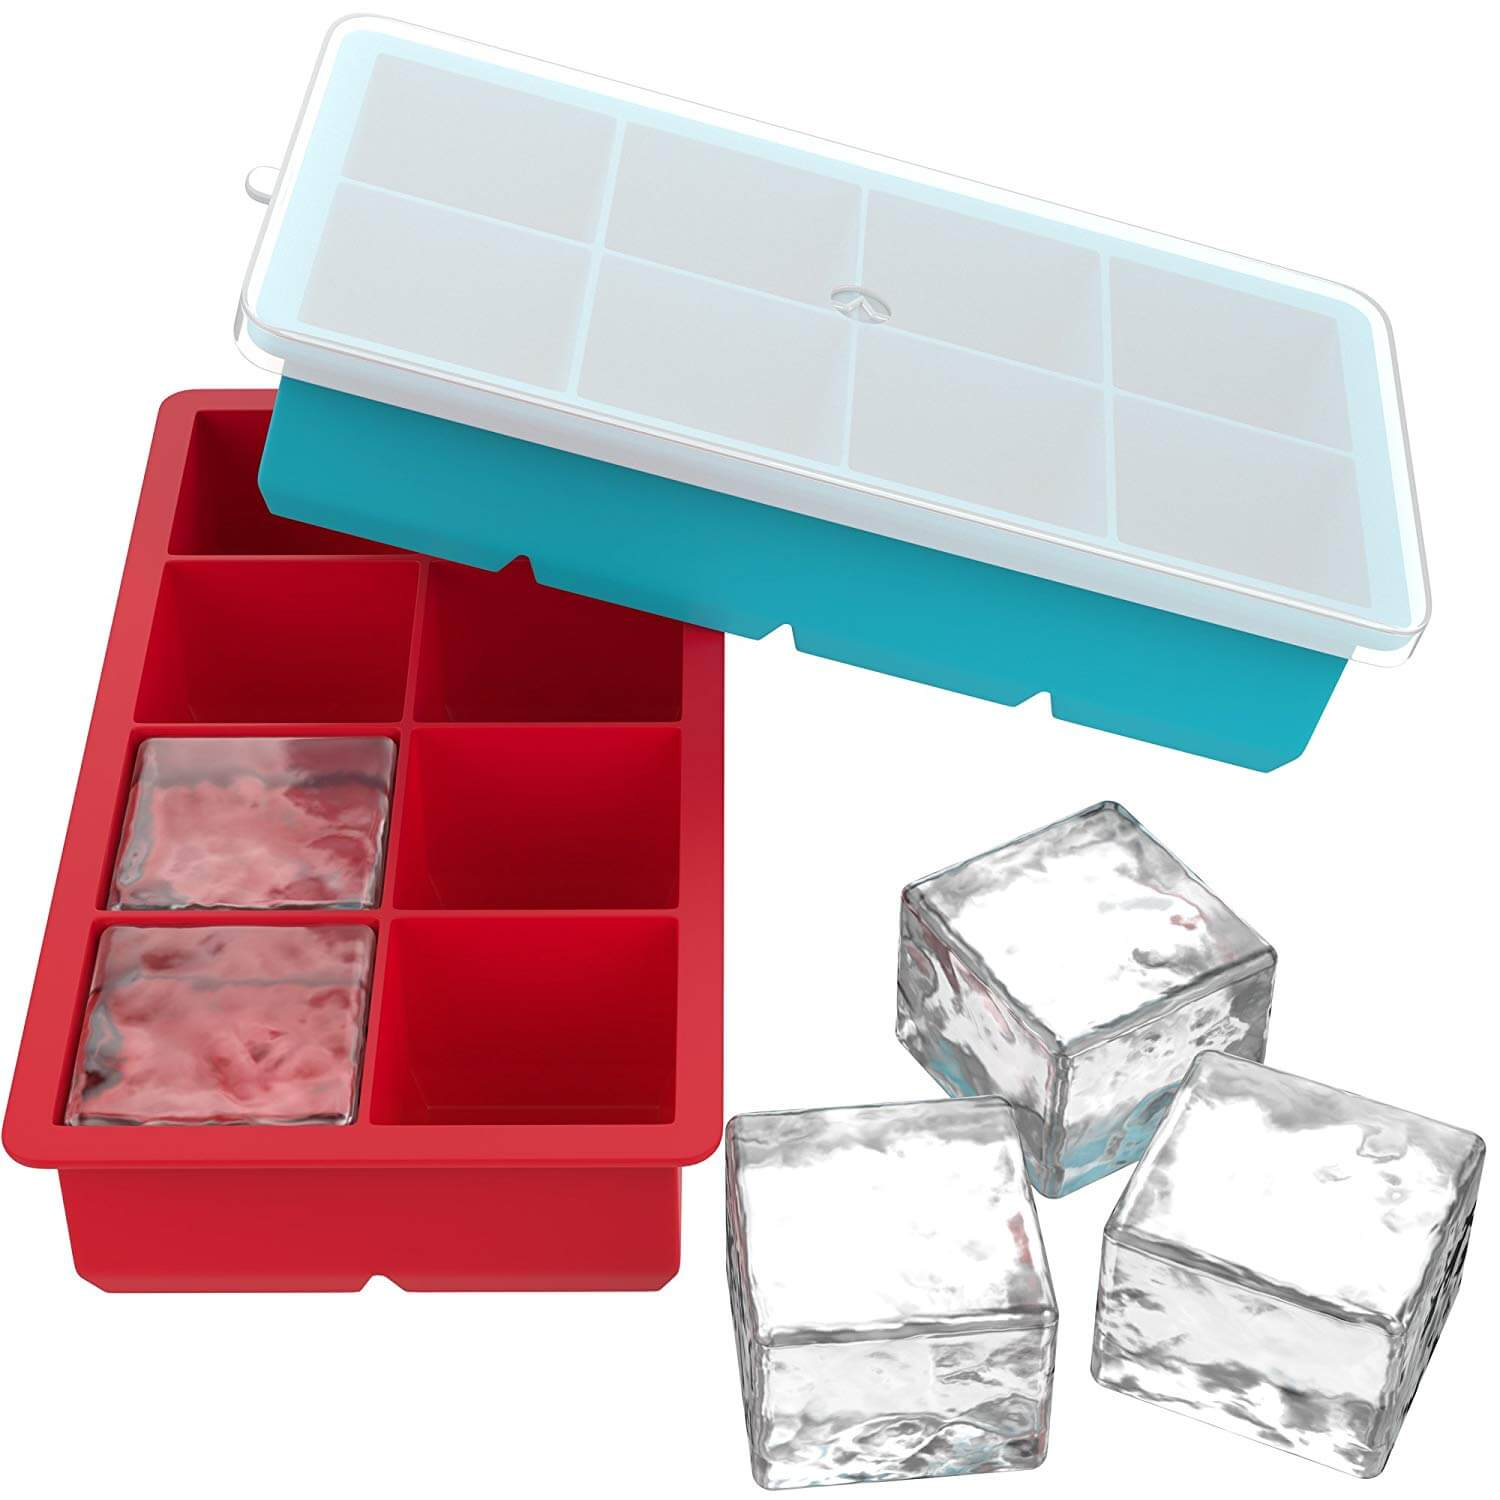 Vremi Large Ice Cube Trays